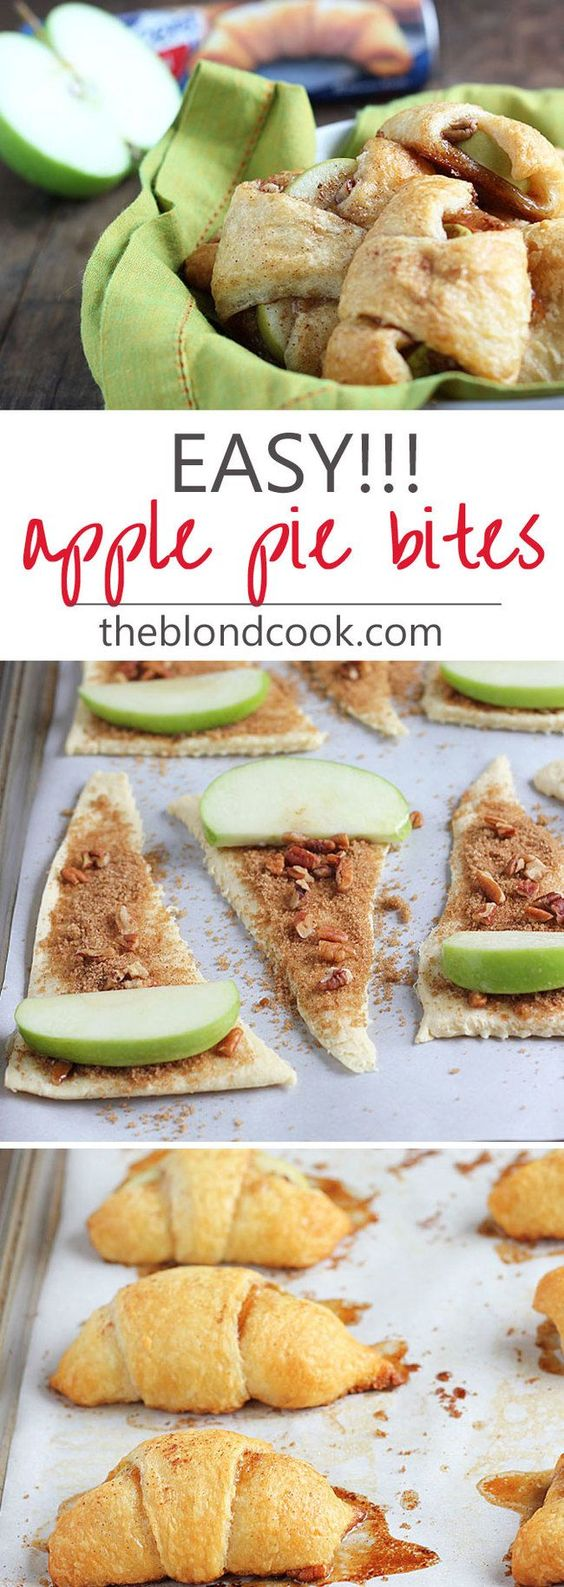 APPLE PIE BITES #apple #pie #bites #dessertrecipes #easydessertrecipes #cake #cakerecipes #applepie